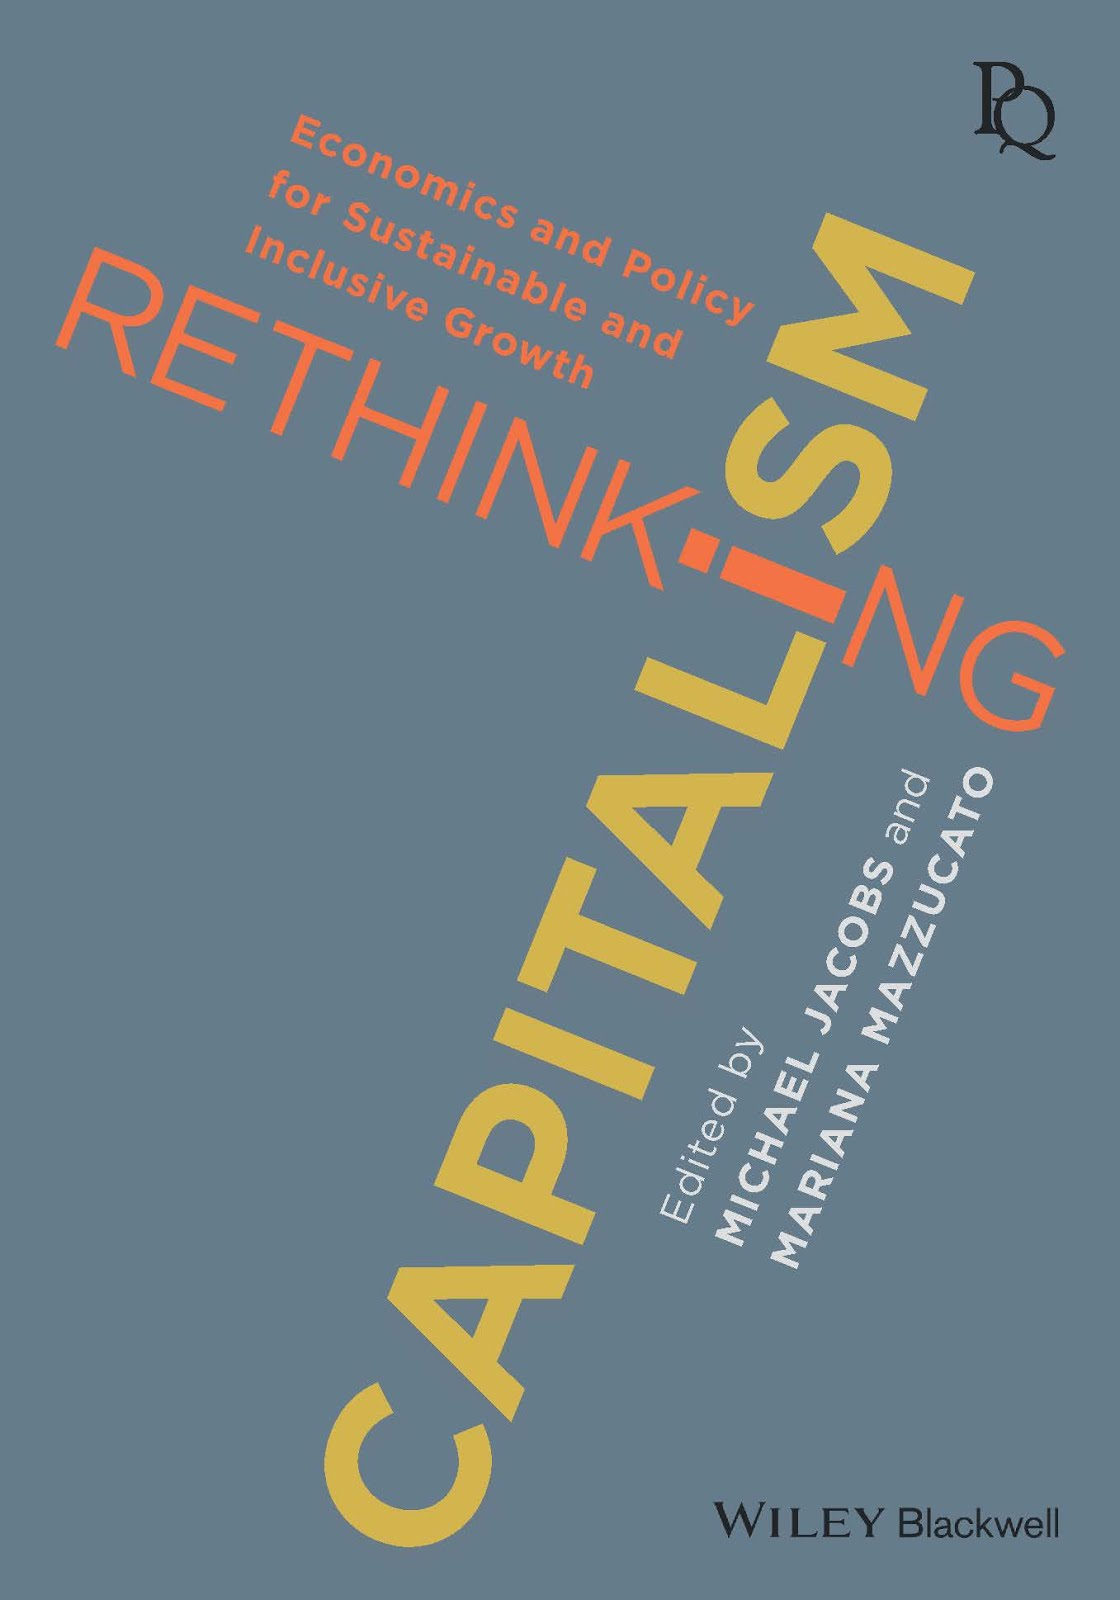 Out now!: Rethinking Capitalism